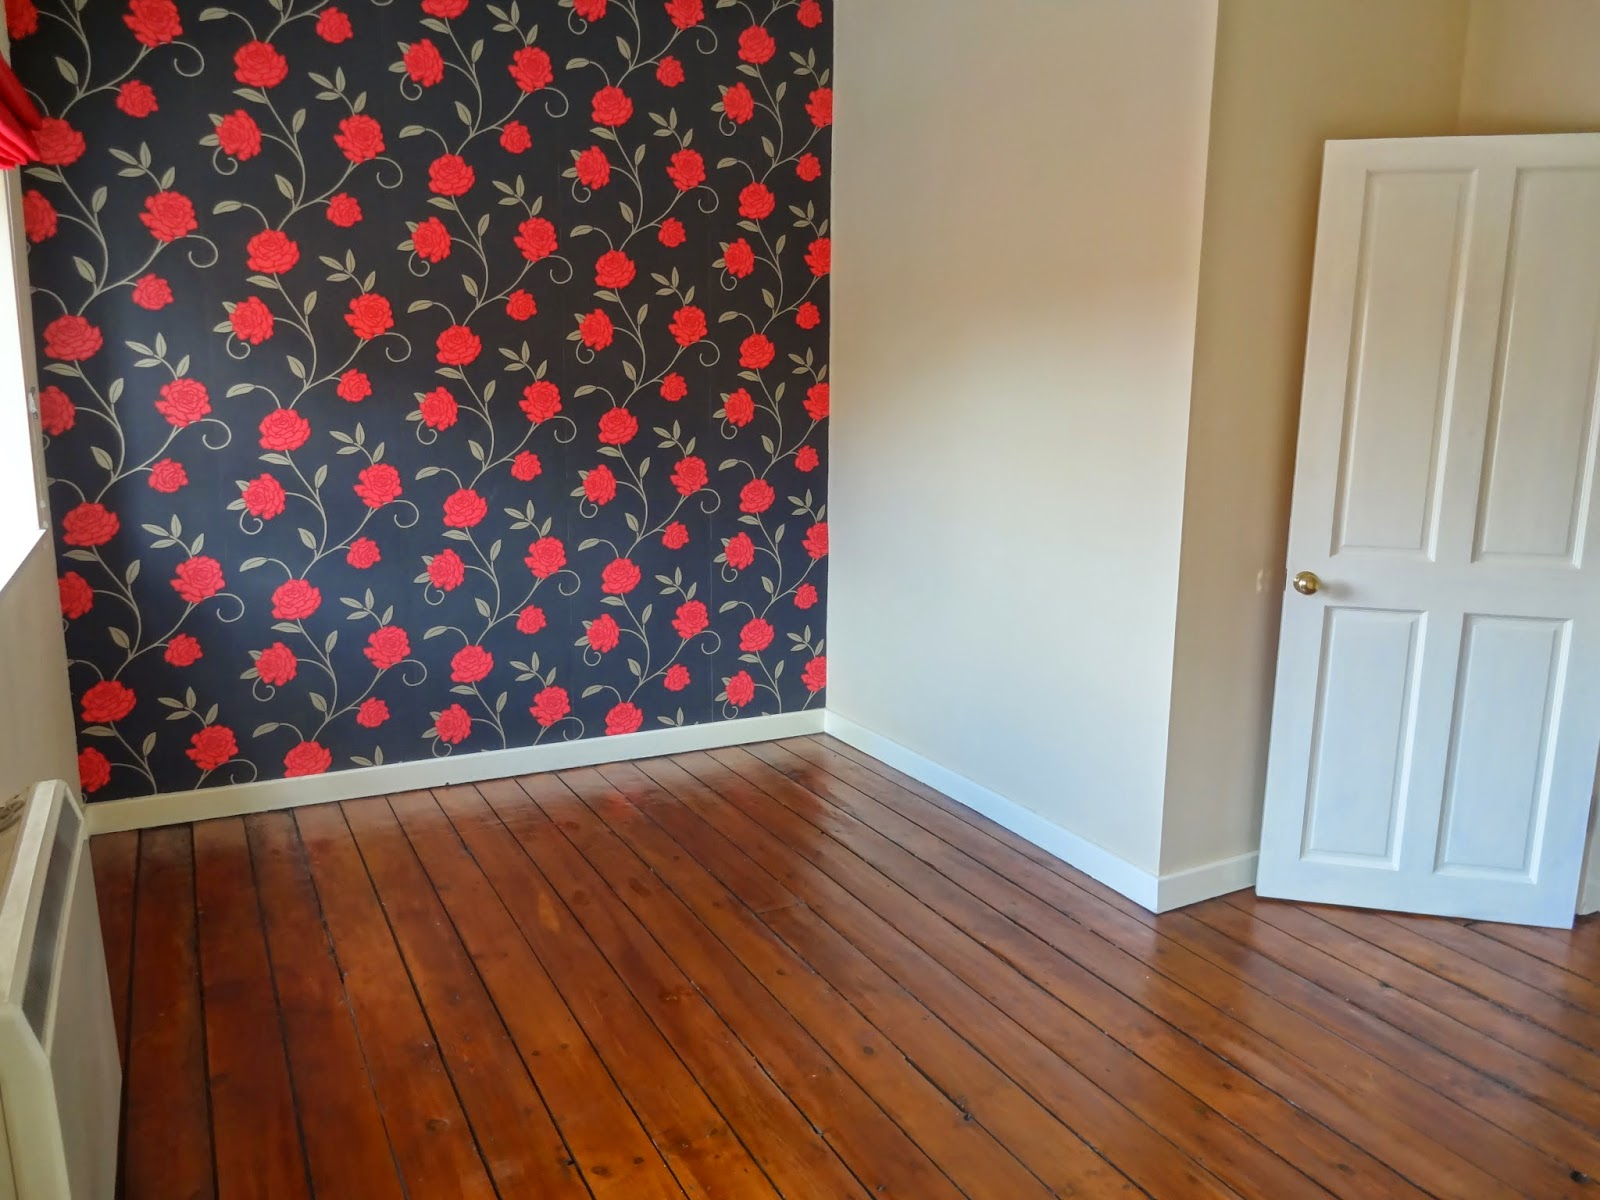 black and red floral wallpaper in bedroom